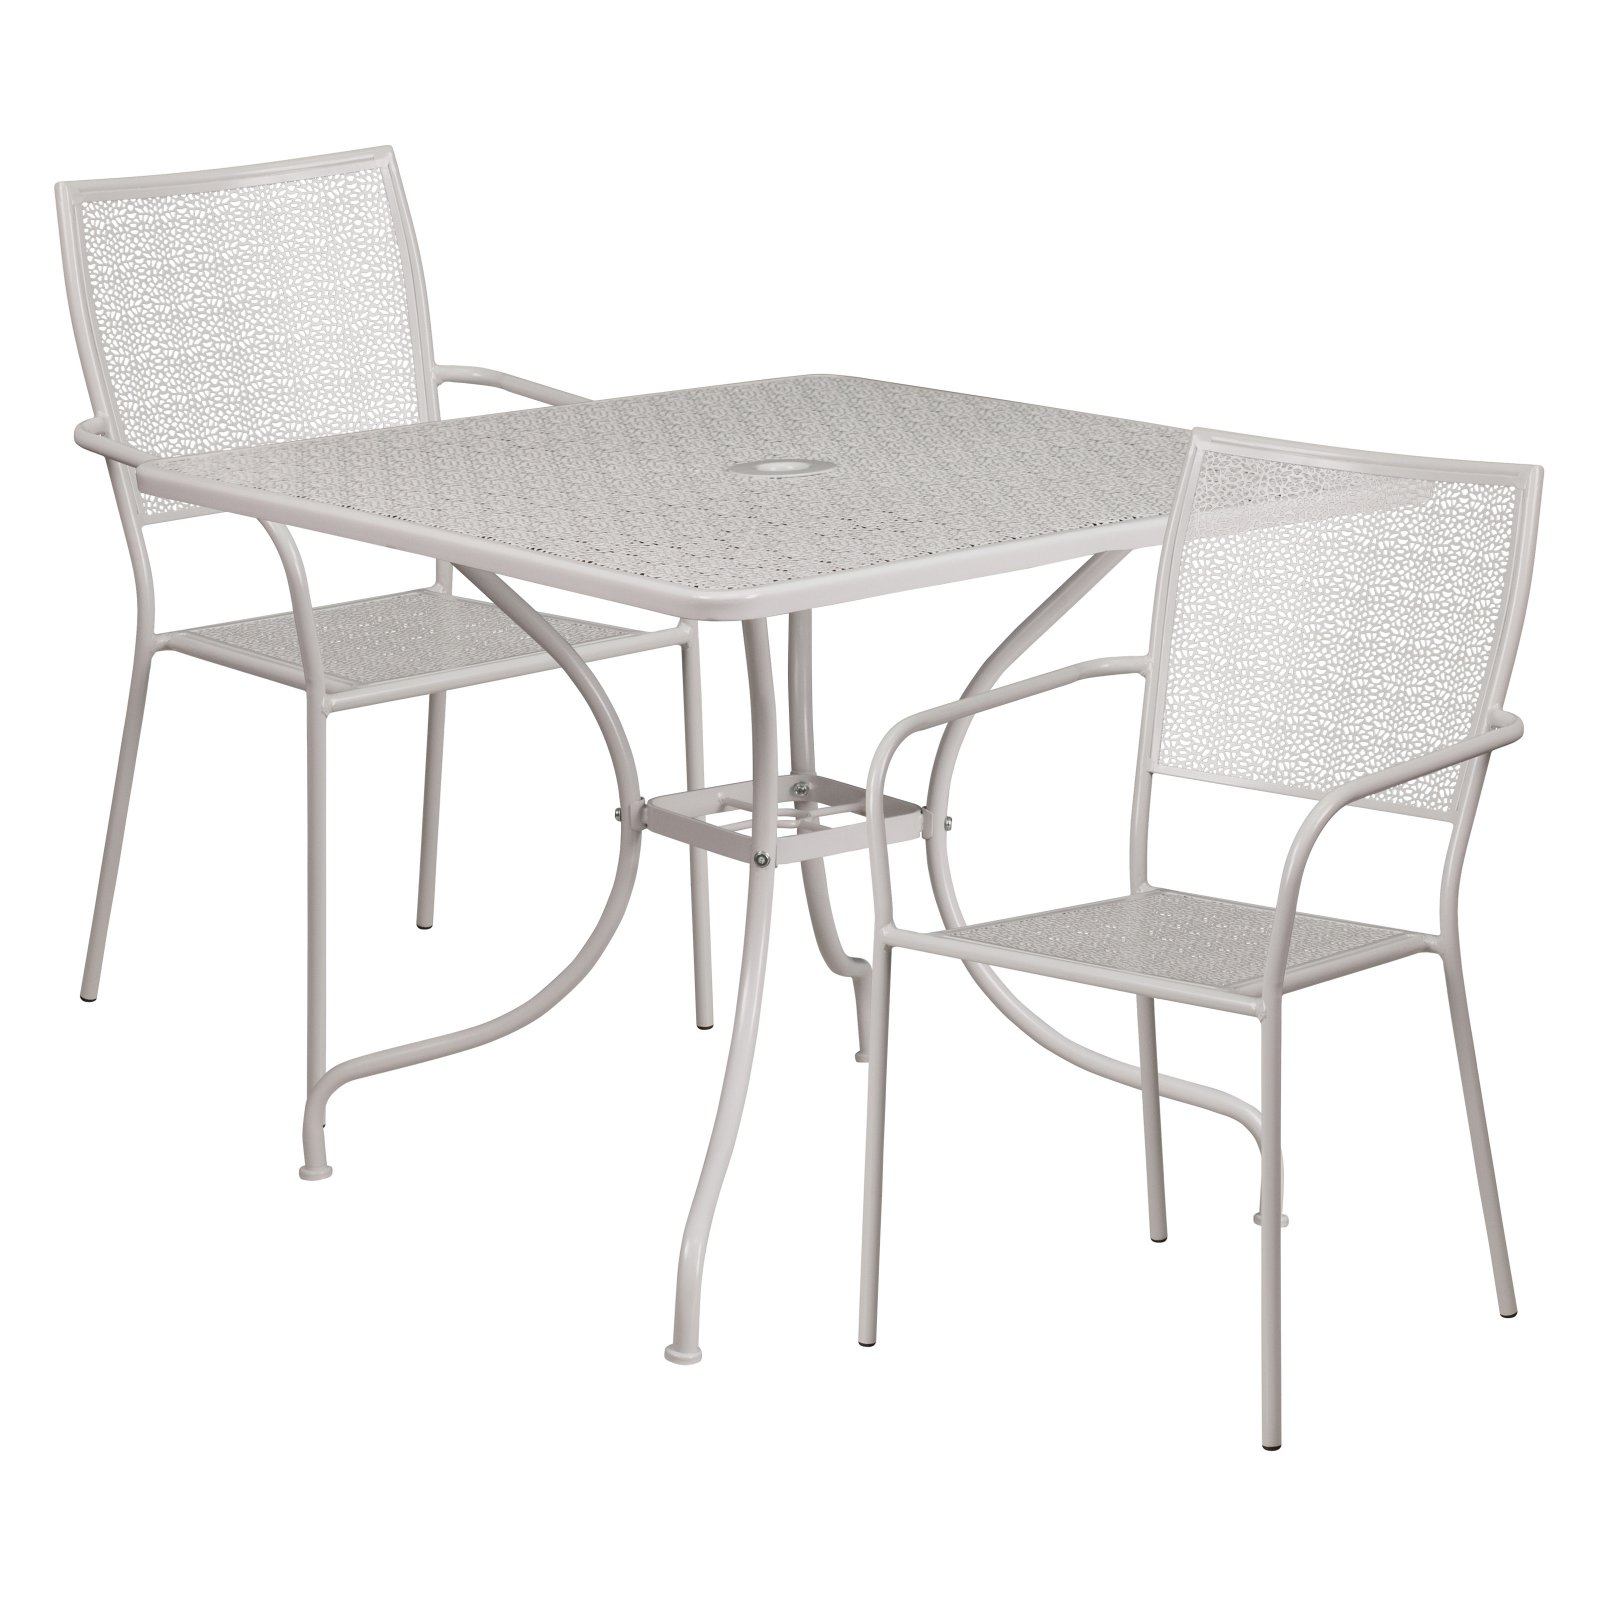 Flash Furniture 35.5'' Square Indoor-Outdoor Steel Patio Table Set with 2 Square Back Chairs Multiple Colors